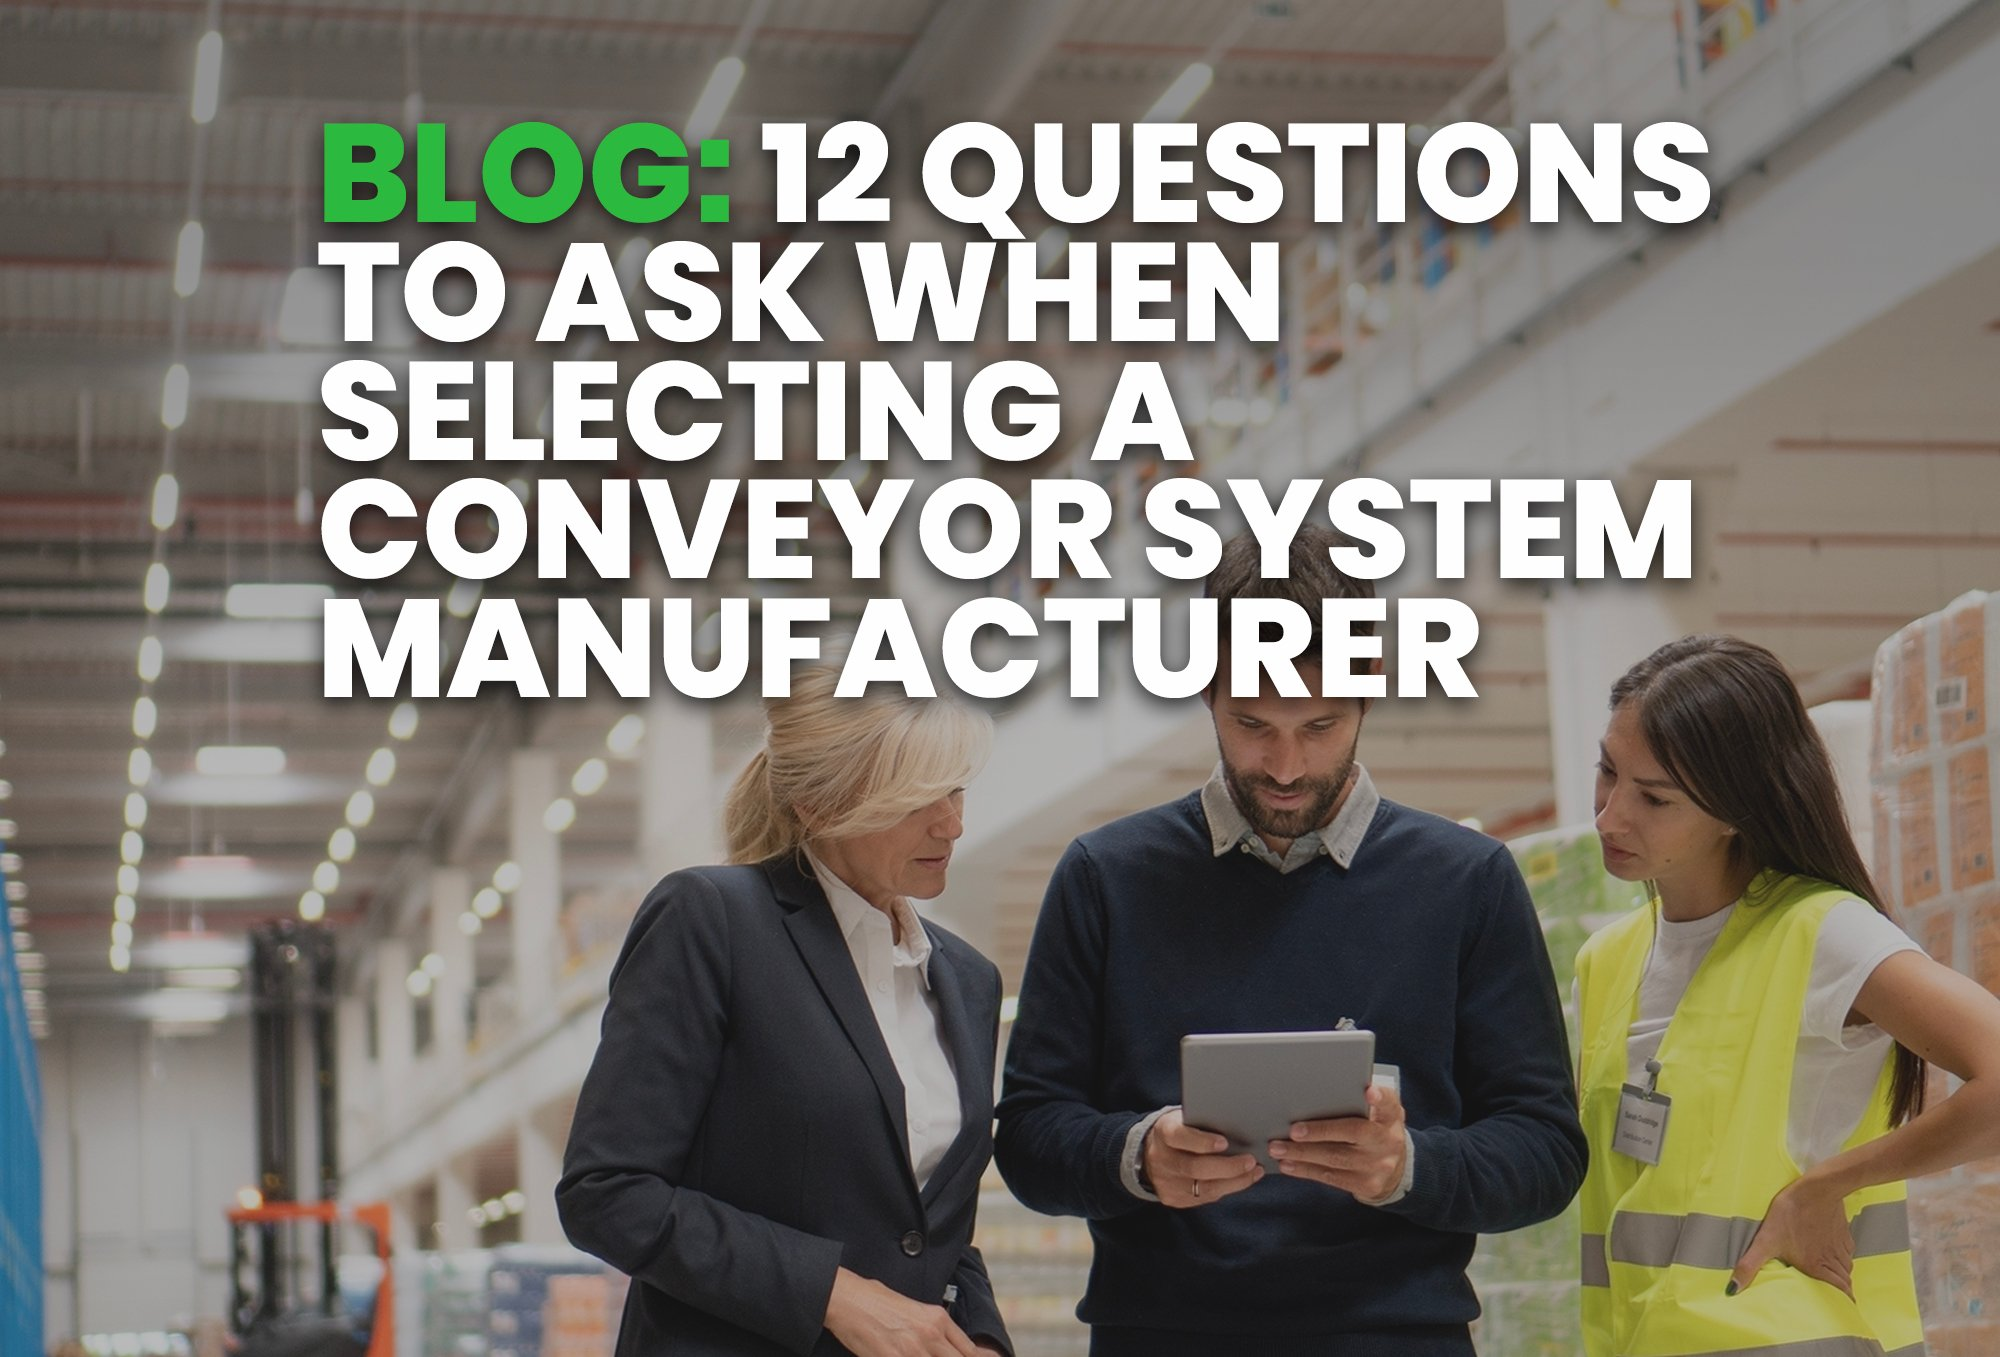 BLOG- 12 Questions To Ask When Selecting A Conveyor System Manufacturer